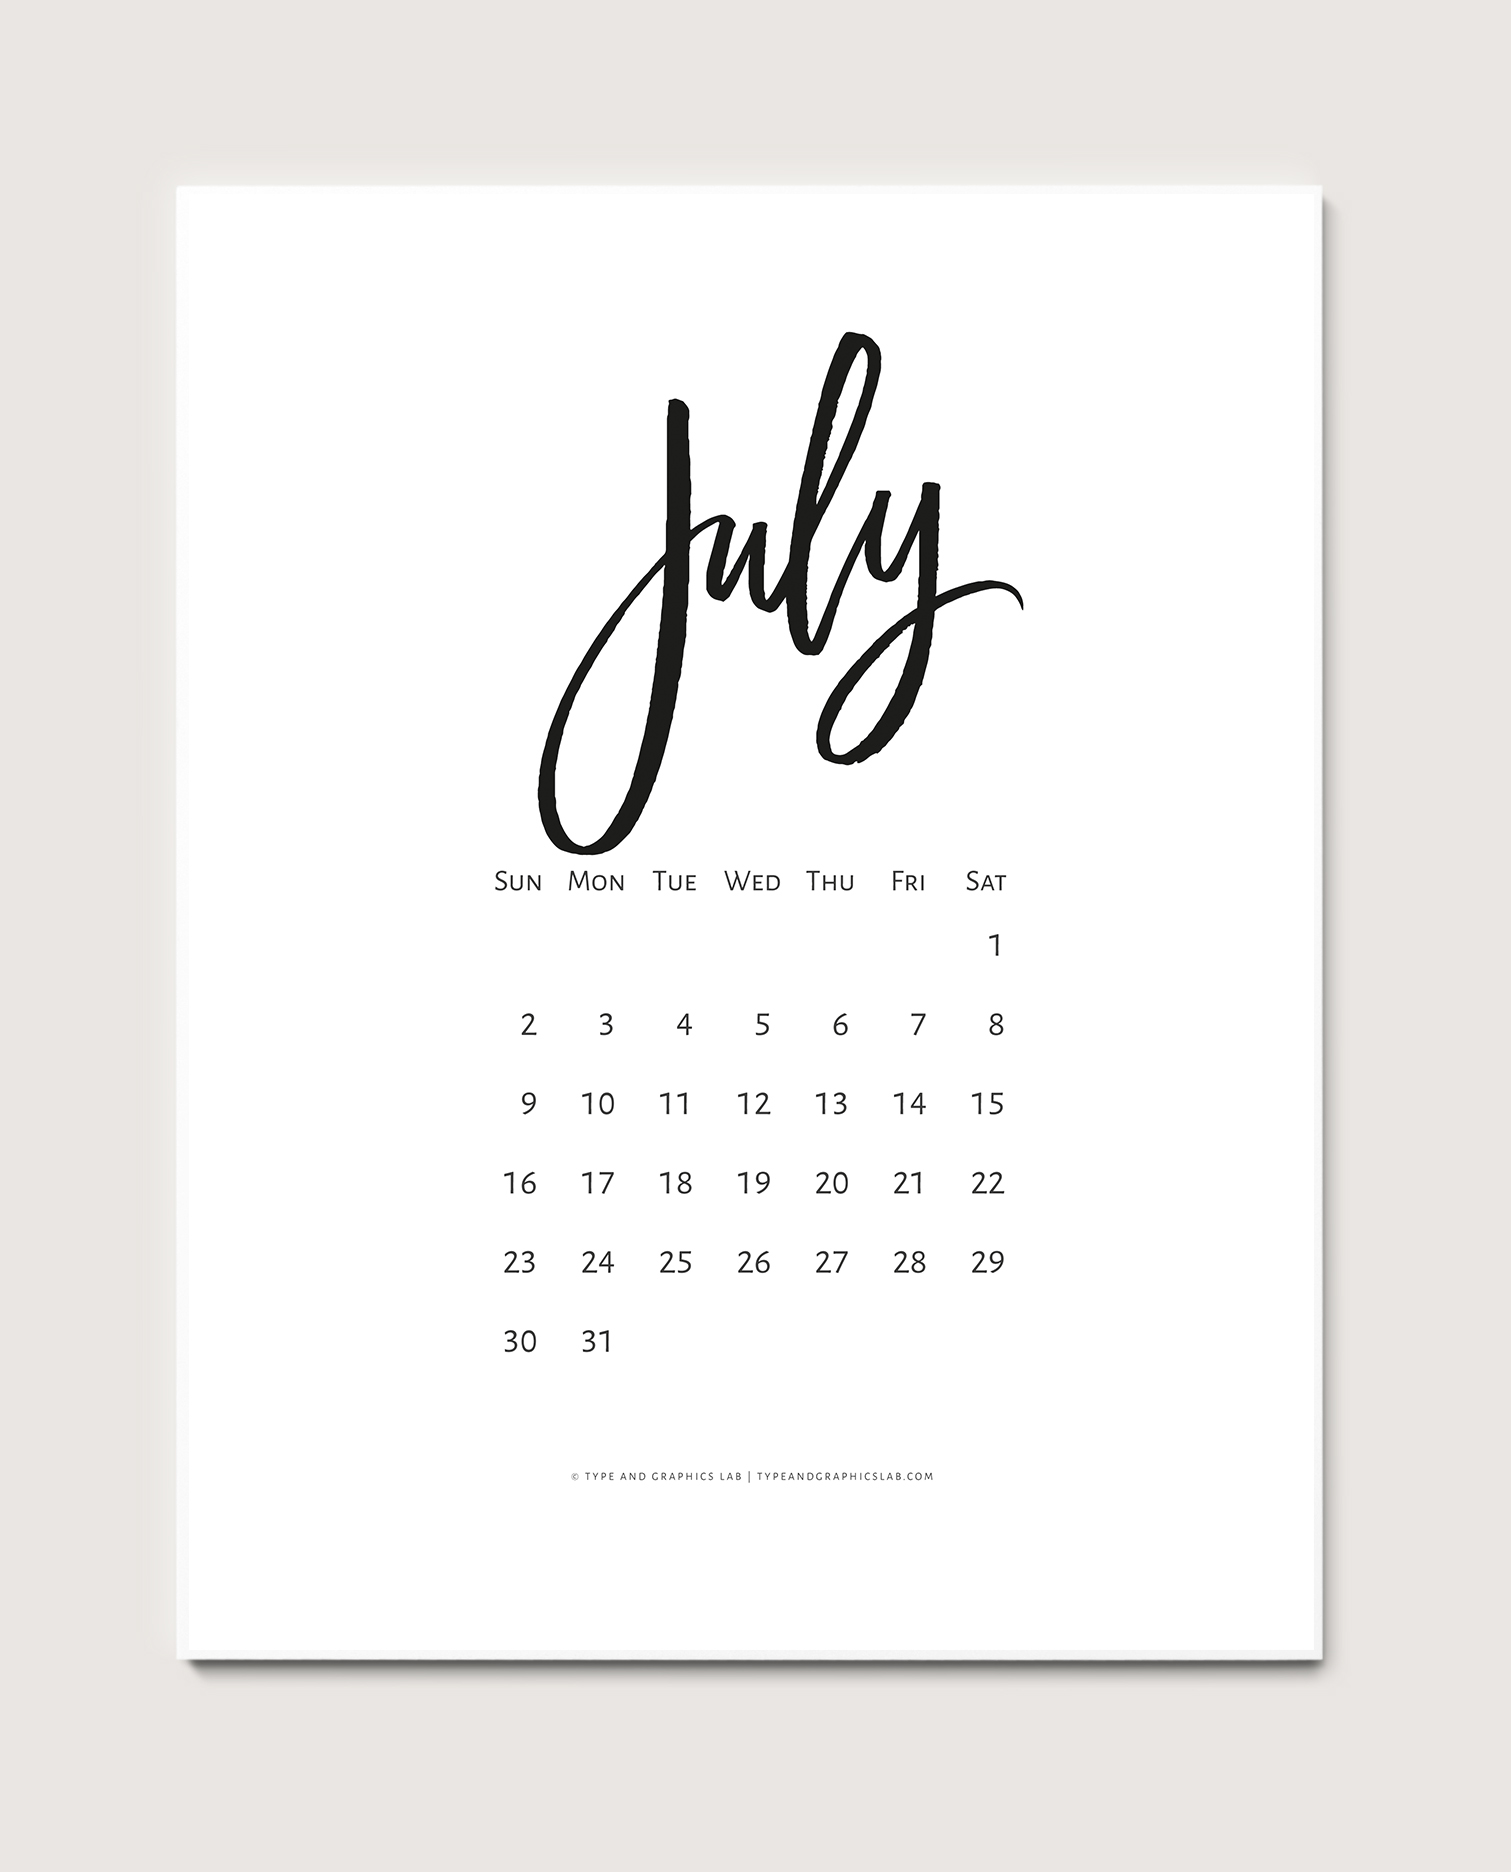 Download a free printable calendar for July 2017 | © typeandgraphicslab.com | For personal use only